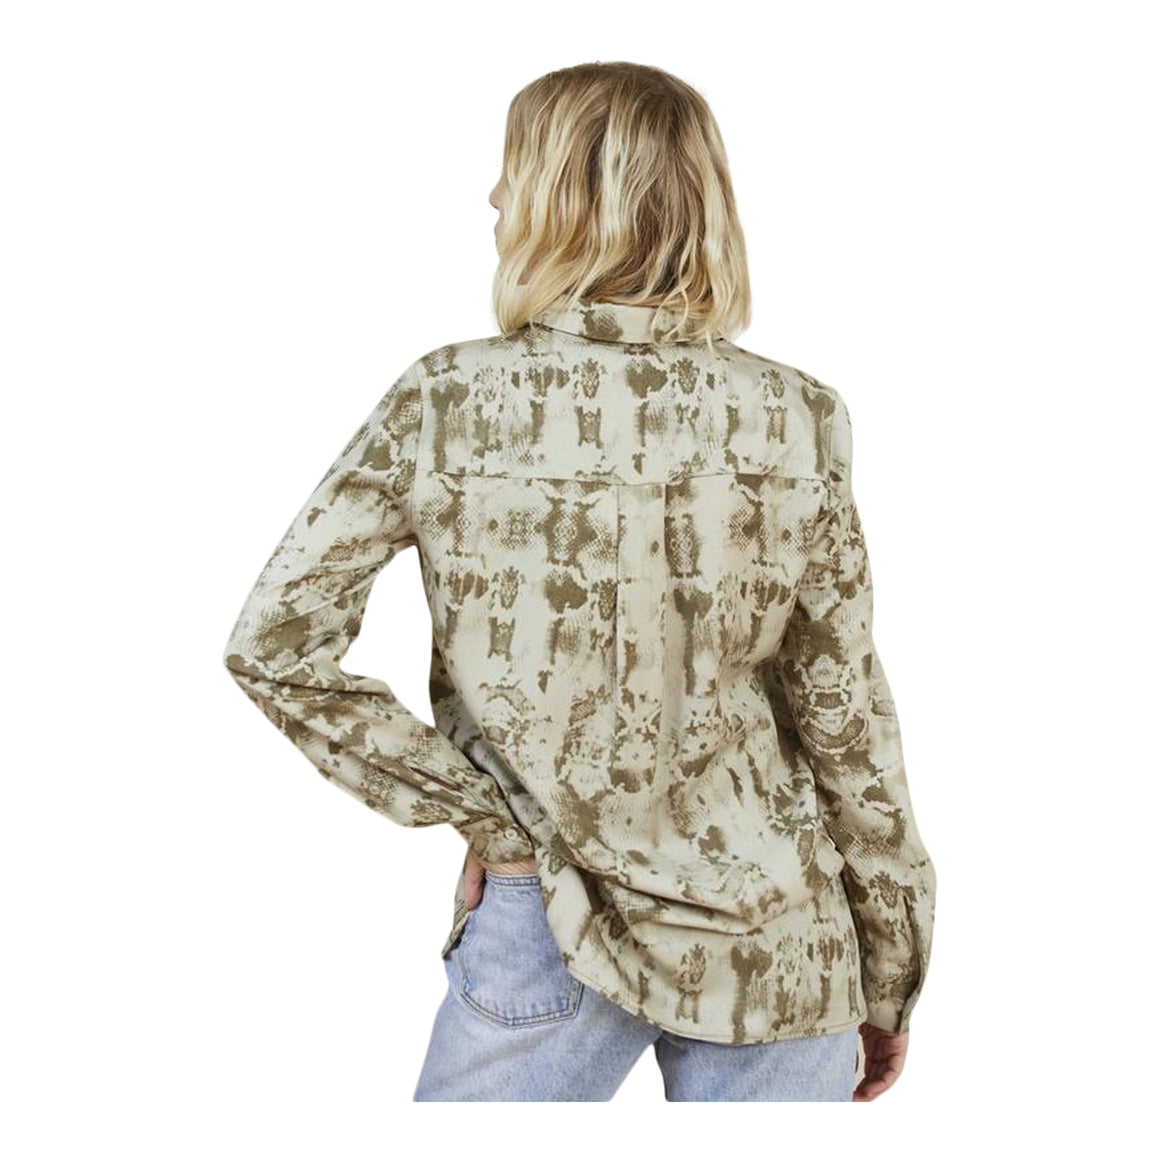 Louise Snakeprint Shirt for Women in Olive Reptile